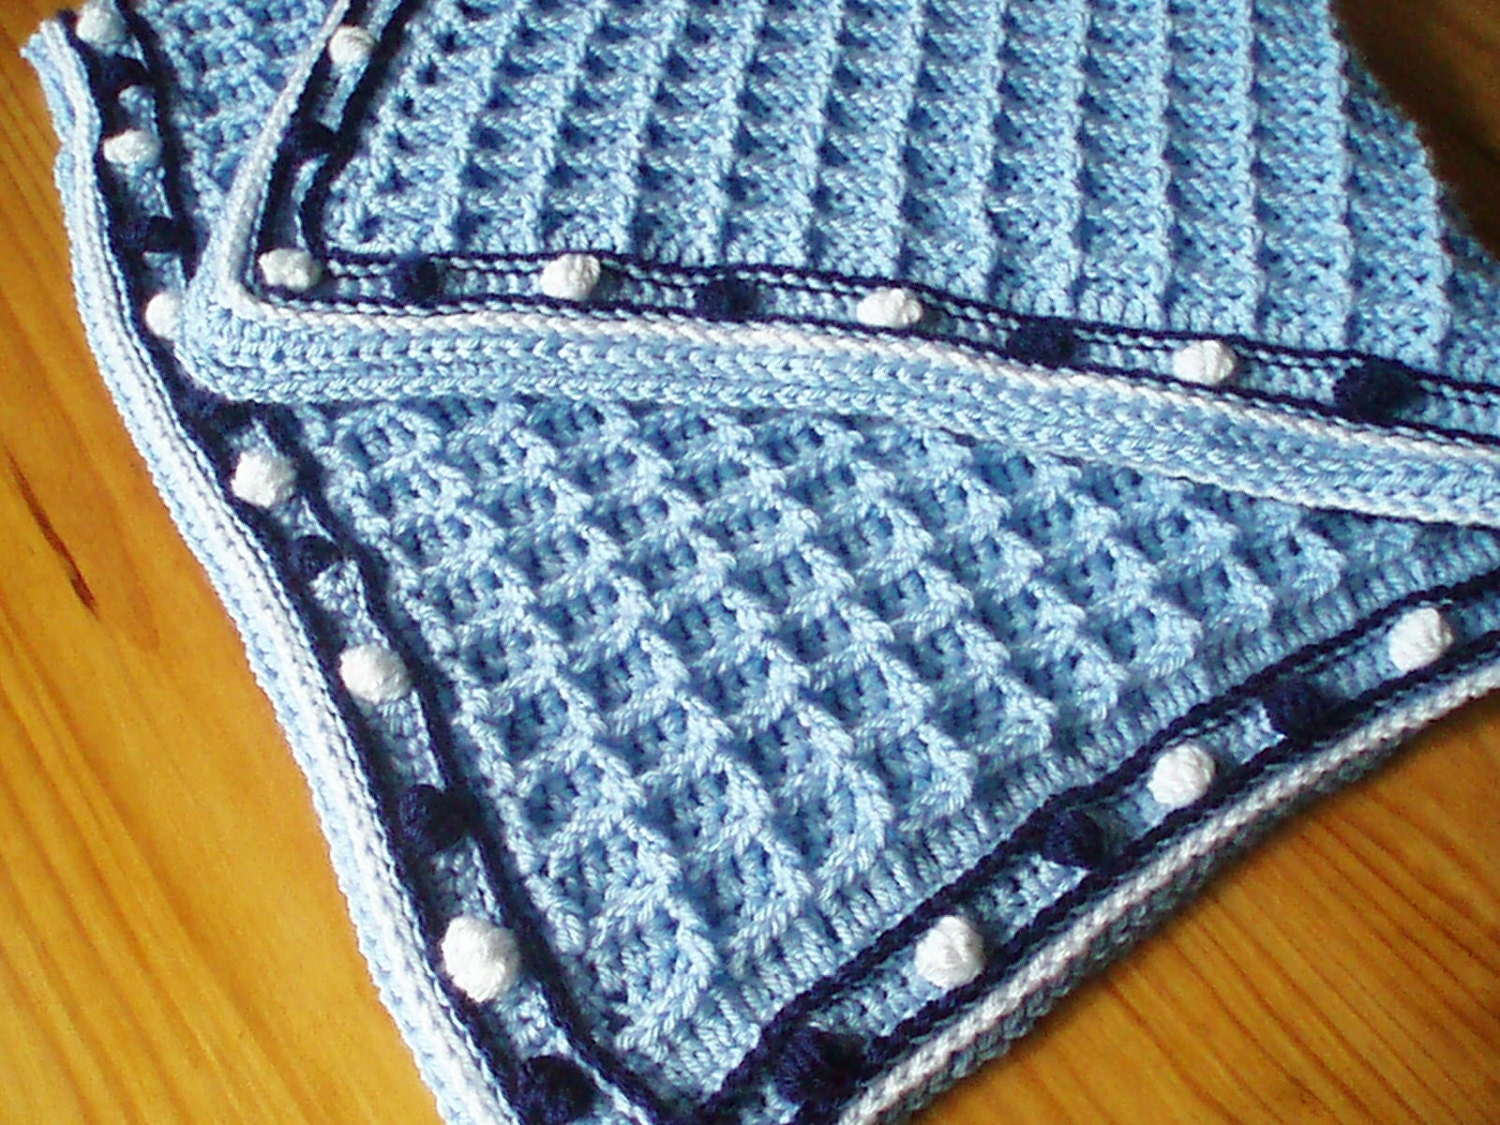 Crochet Pattern For Baby Blanket In Waffle Weave With Bobble Etsy